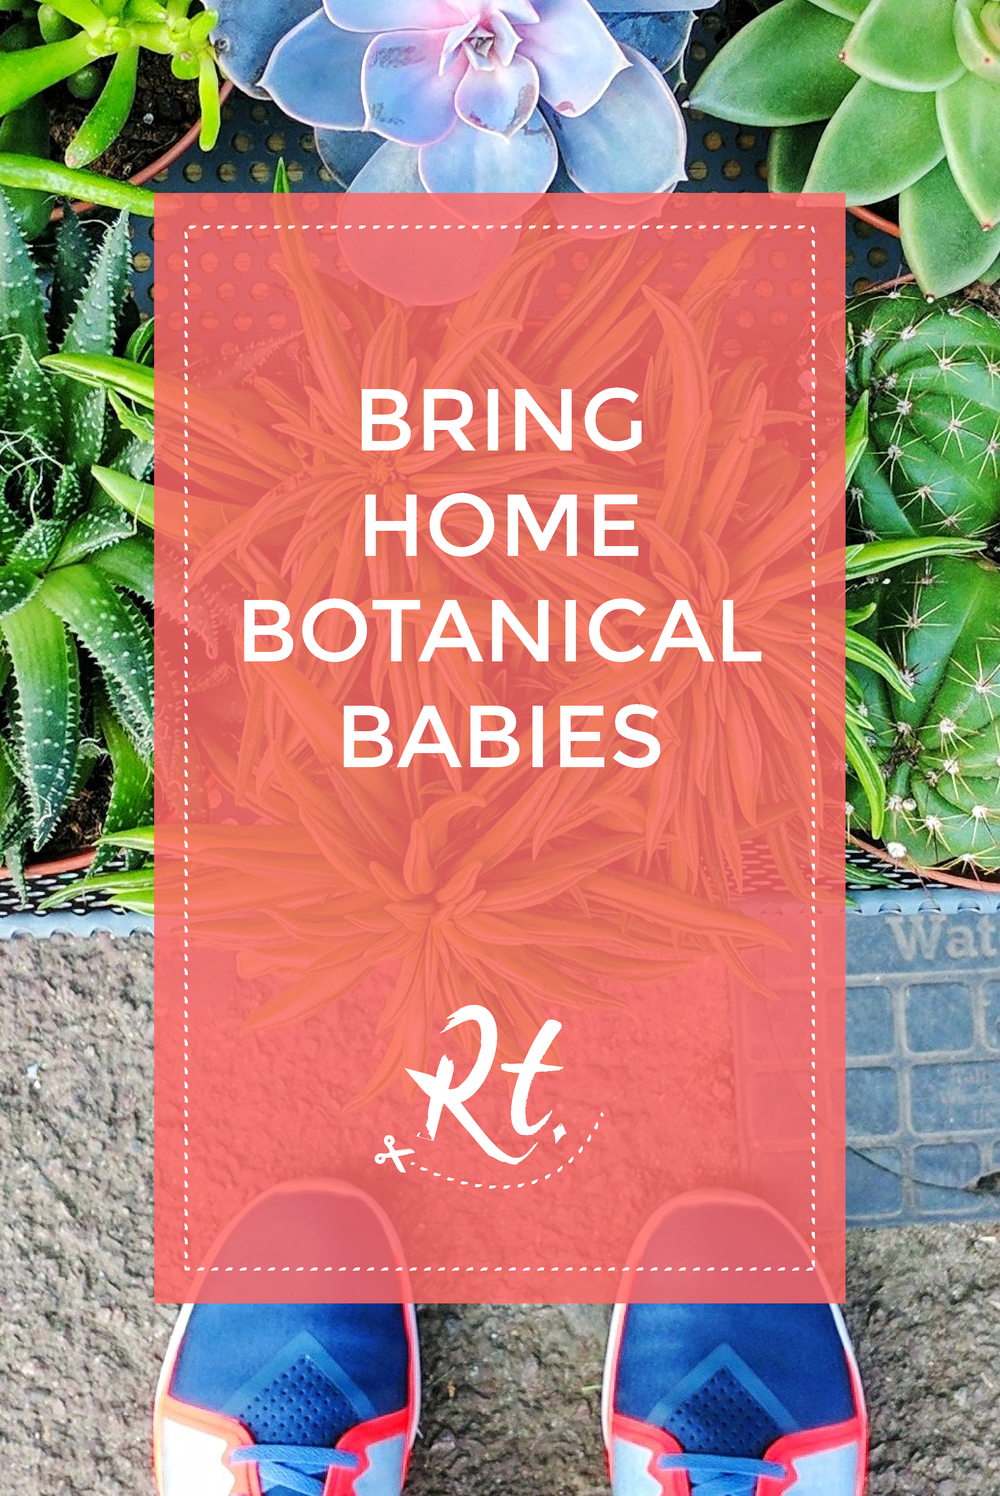 Bring Home Botanical Babies by Rosh Thanki, Botany plant, cacti and succulent shop in Hackney